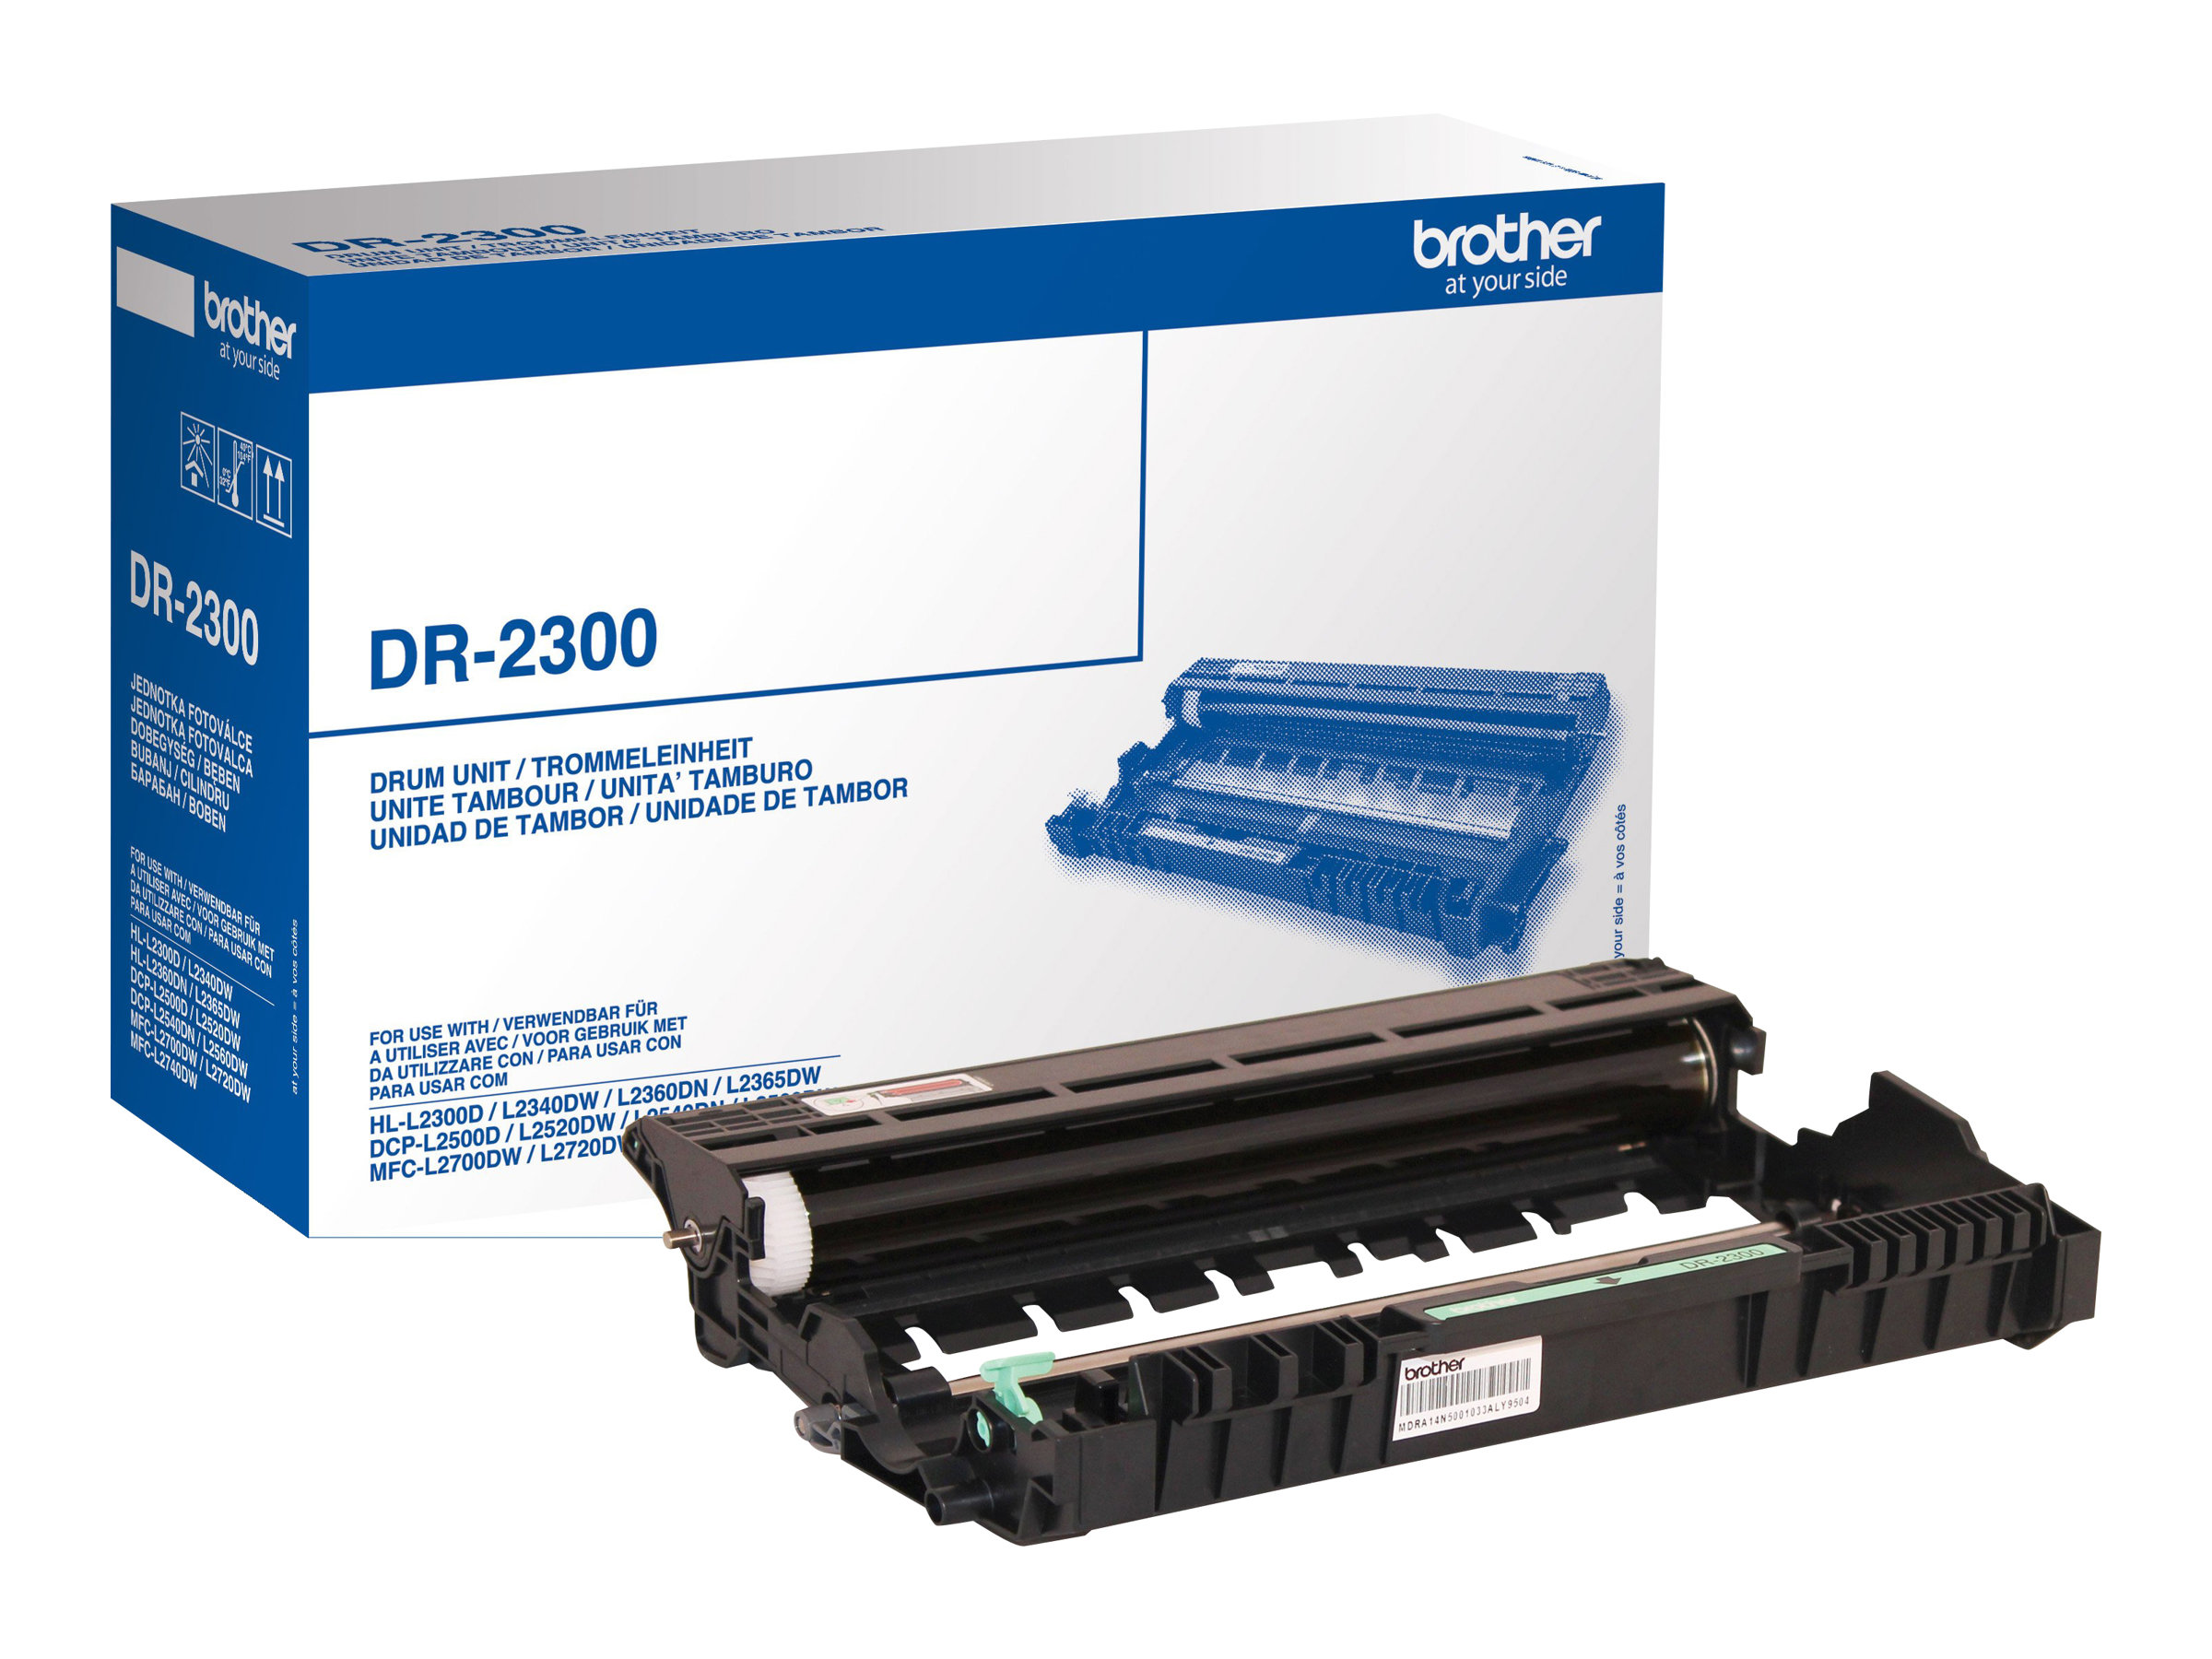 Brother DR2200 - Original - Trommeleinheit - für Brother DCP-7055